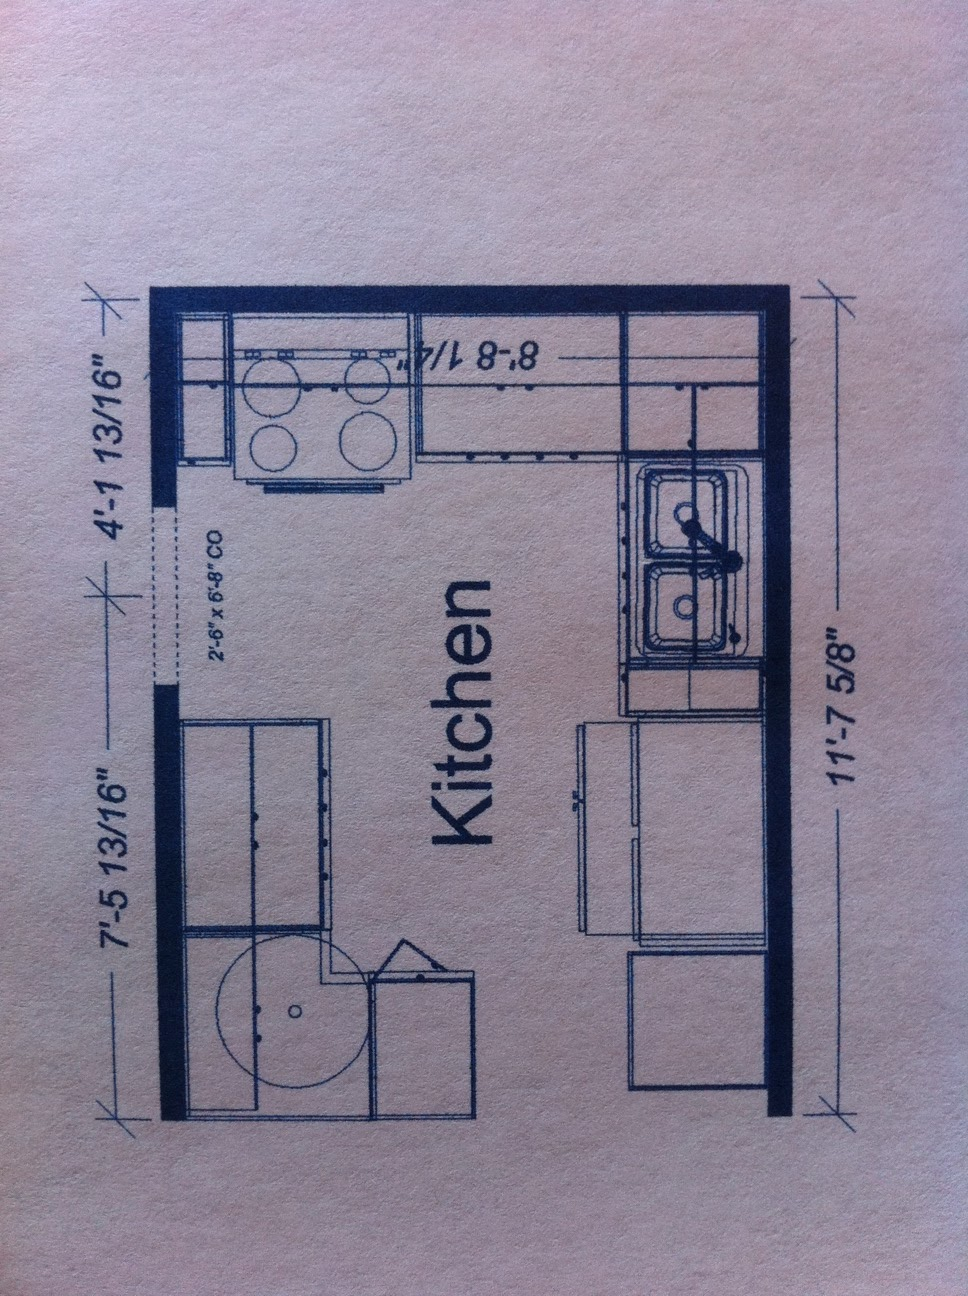 Premium kitchen blog kitchen design blueprint kitchen design blueprint malvernweather Gallery